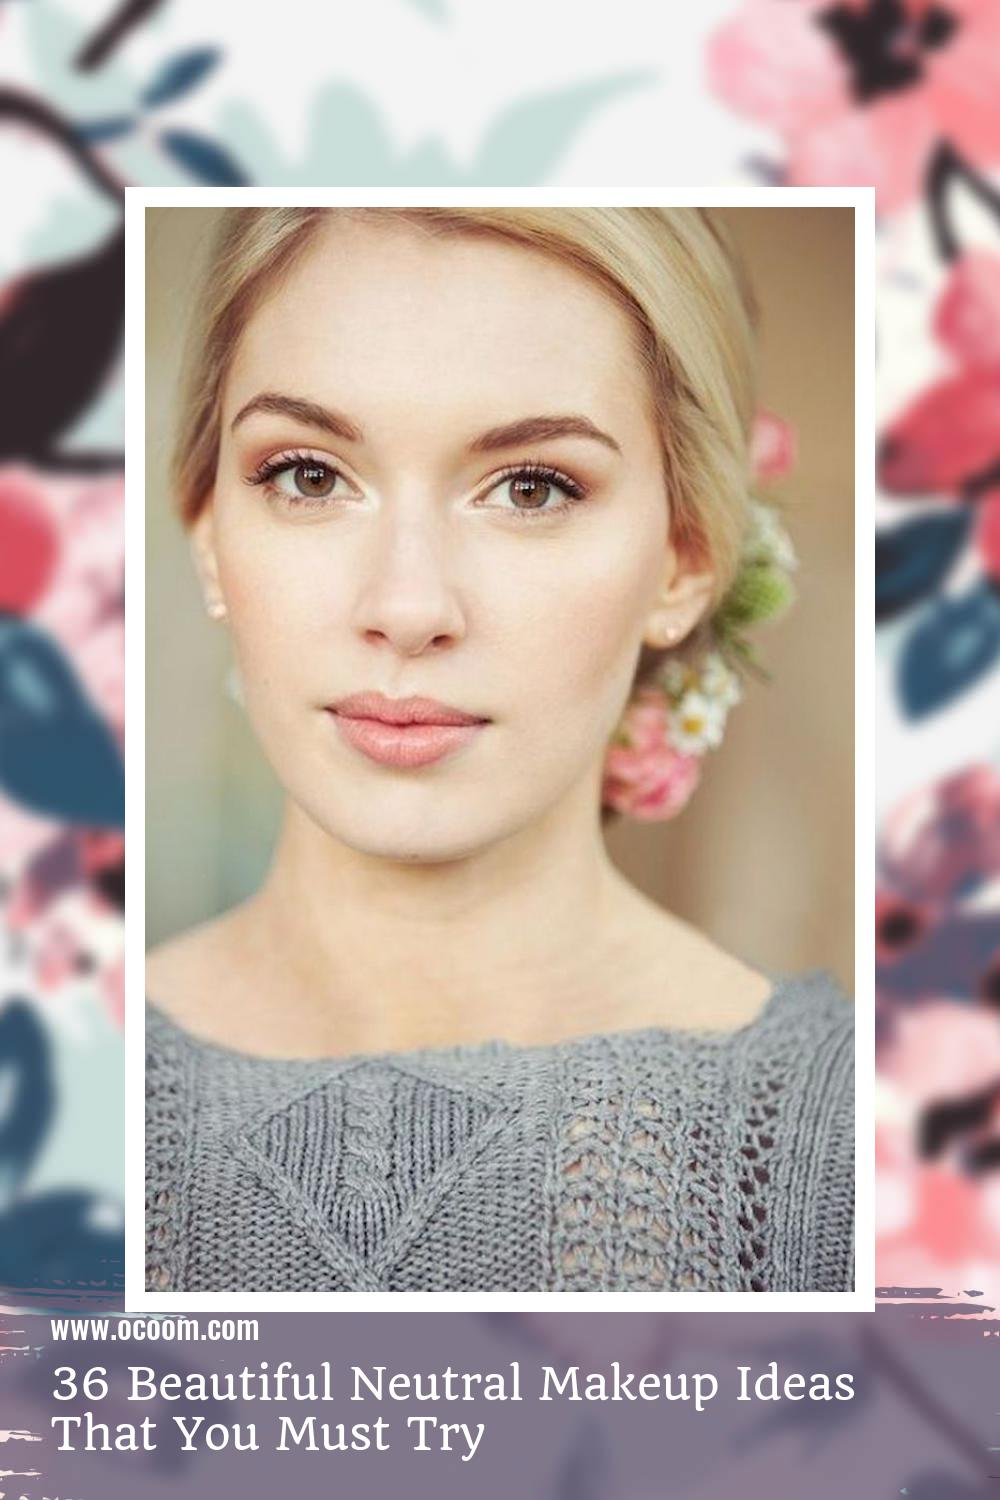 36 Beautiful Neutral Makeup Ideas That You Must Try 19